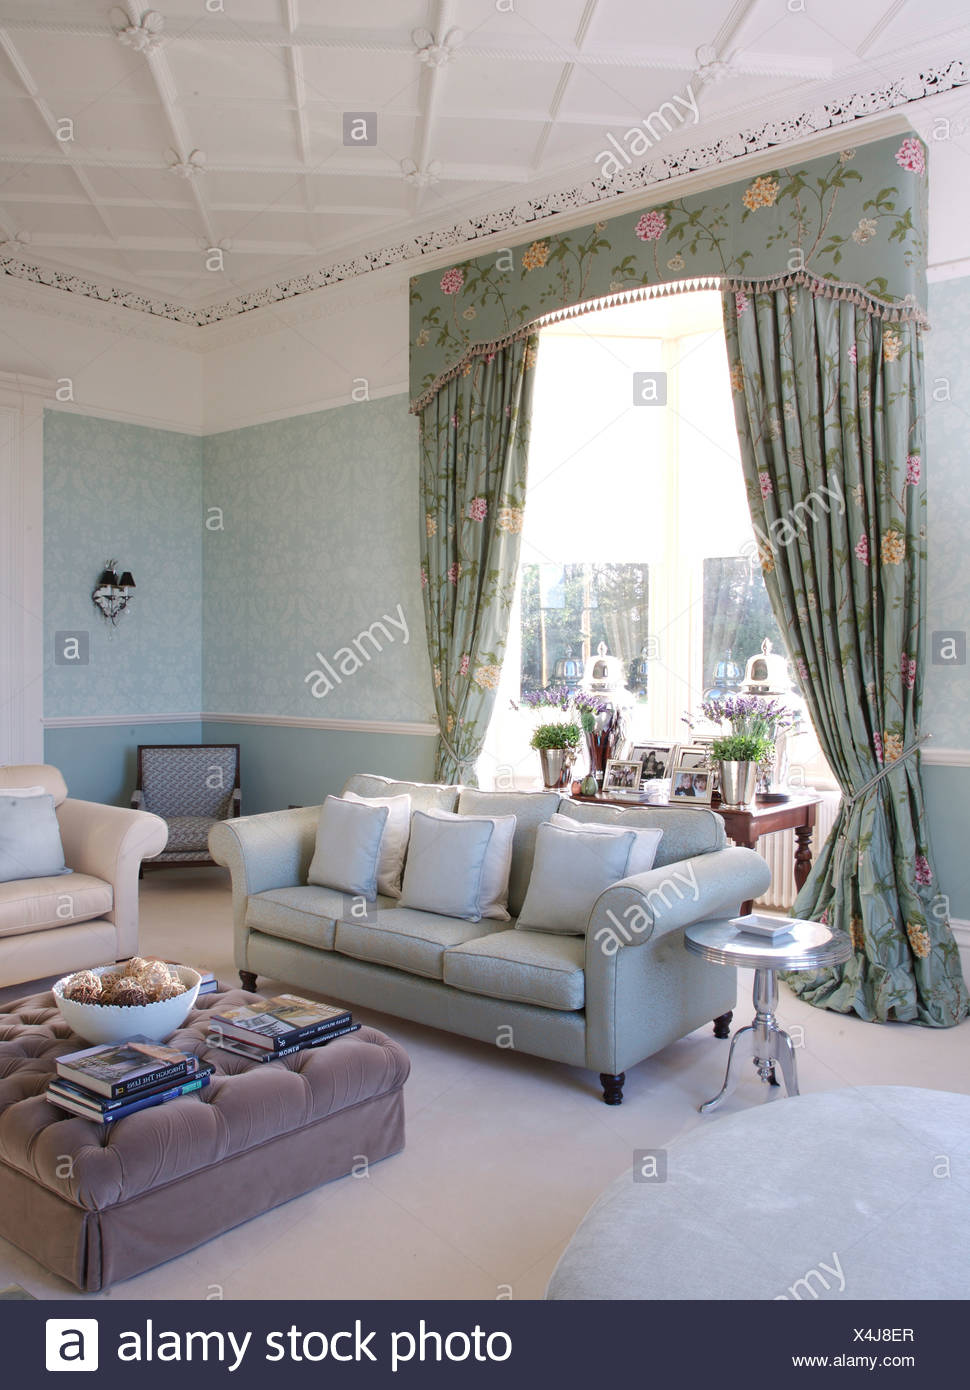 Blue Pink Floral Curtains In Pale Blue Living Room With With